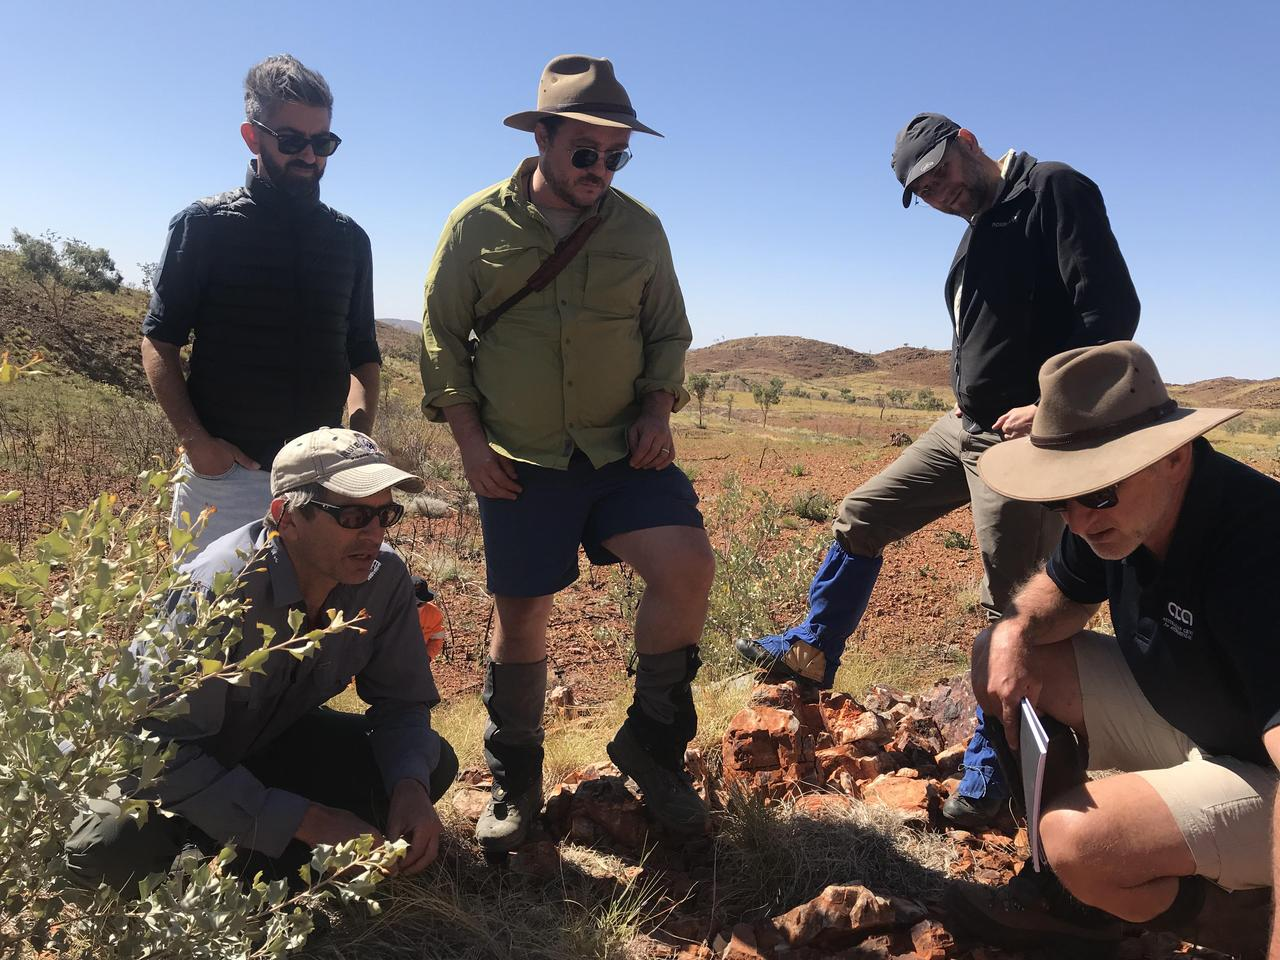 Scientists with NASA's Mars 2020 mission and the European-Russian ExoMars mission traveled to the Australian Outback to hone their research techniques before their missions launch to the Red Planet in the summer of 2020